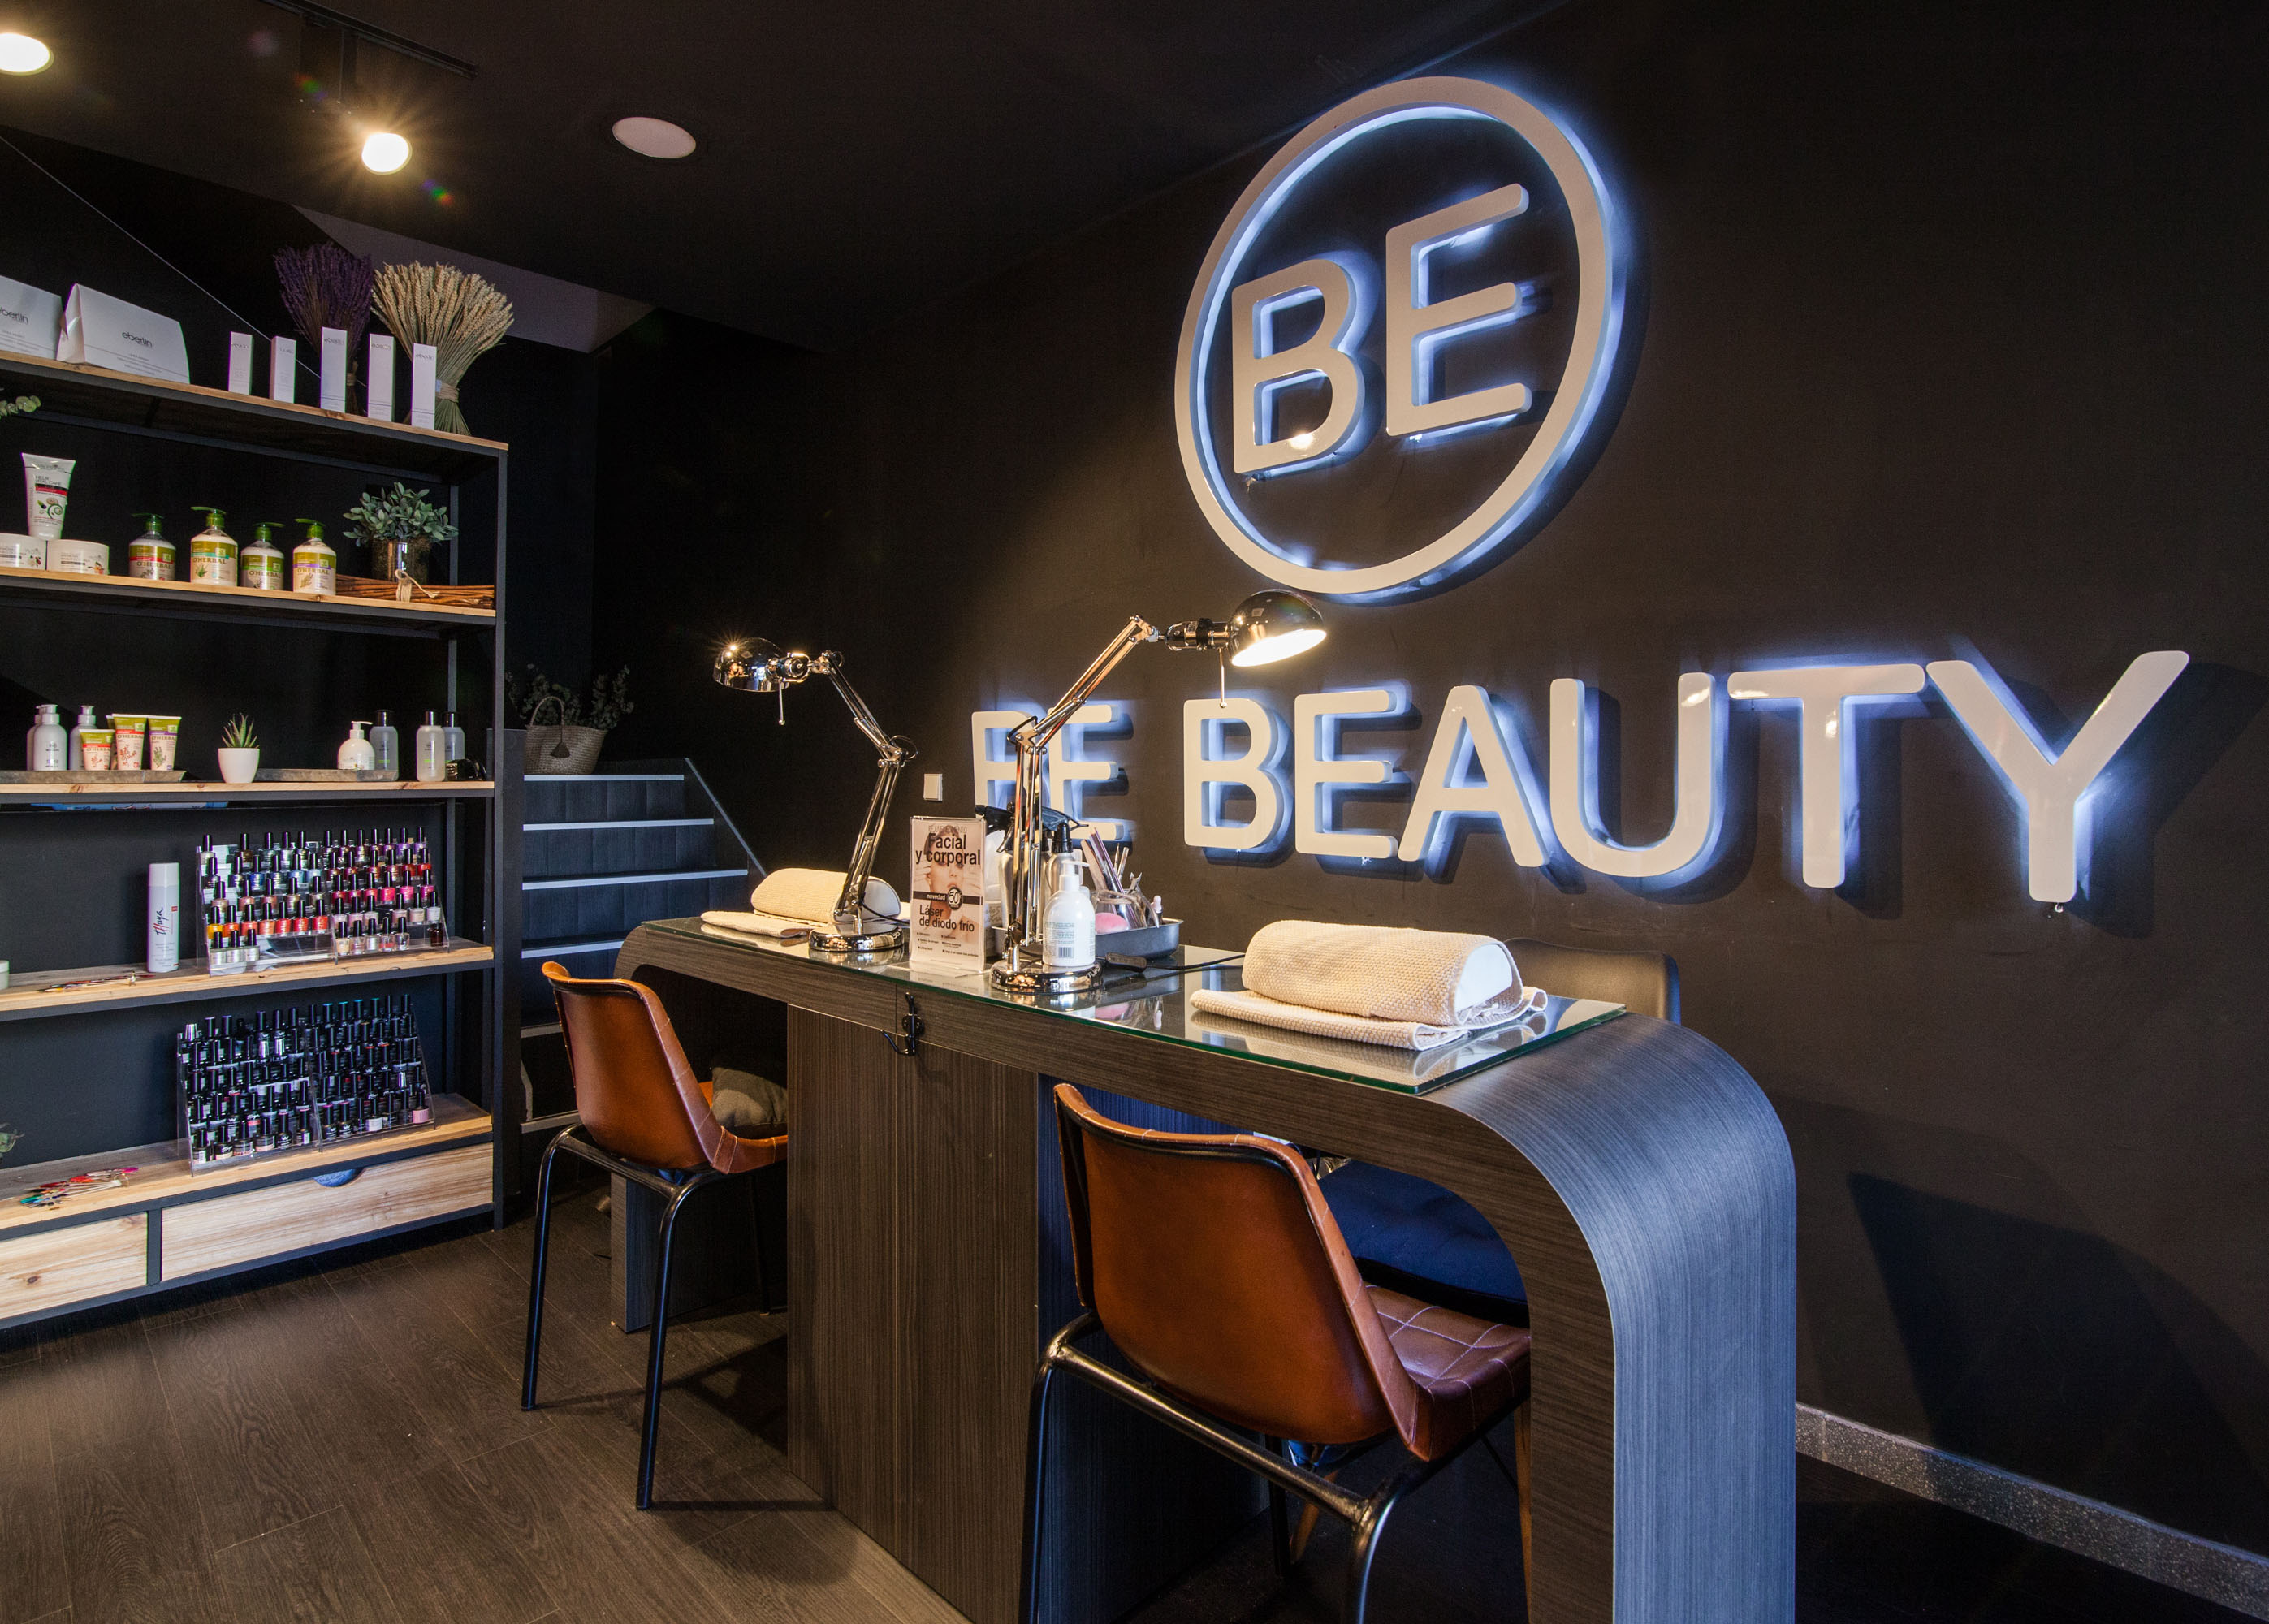 Resultados de Madrid de Be Beauty Barceló